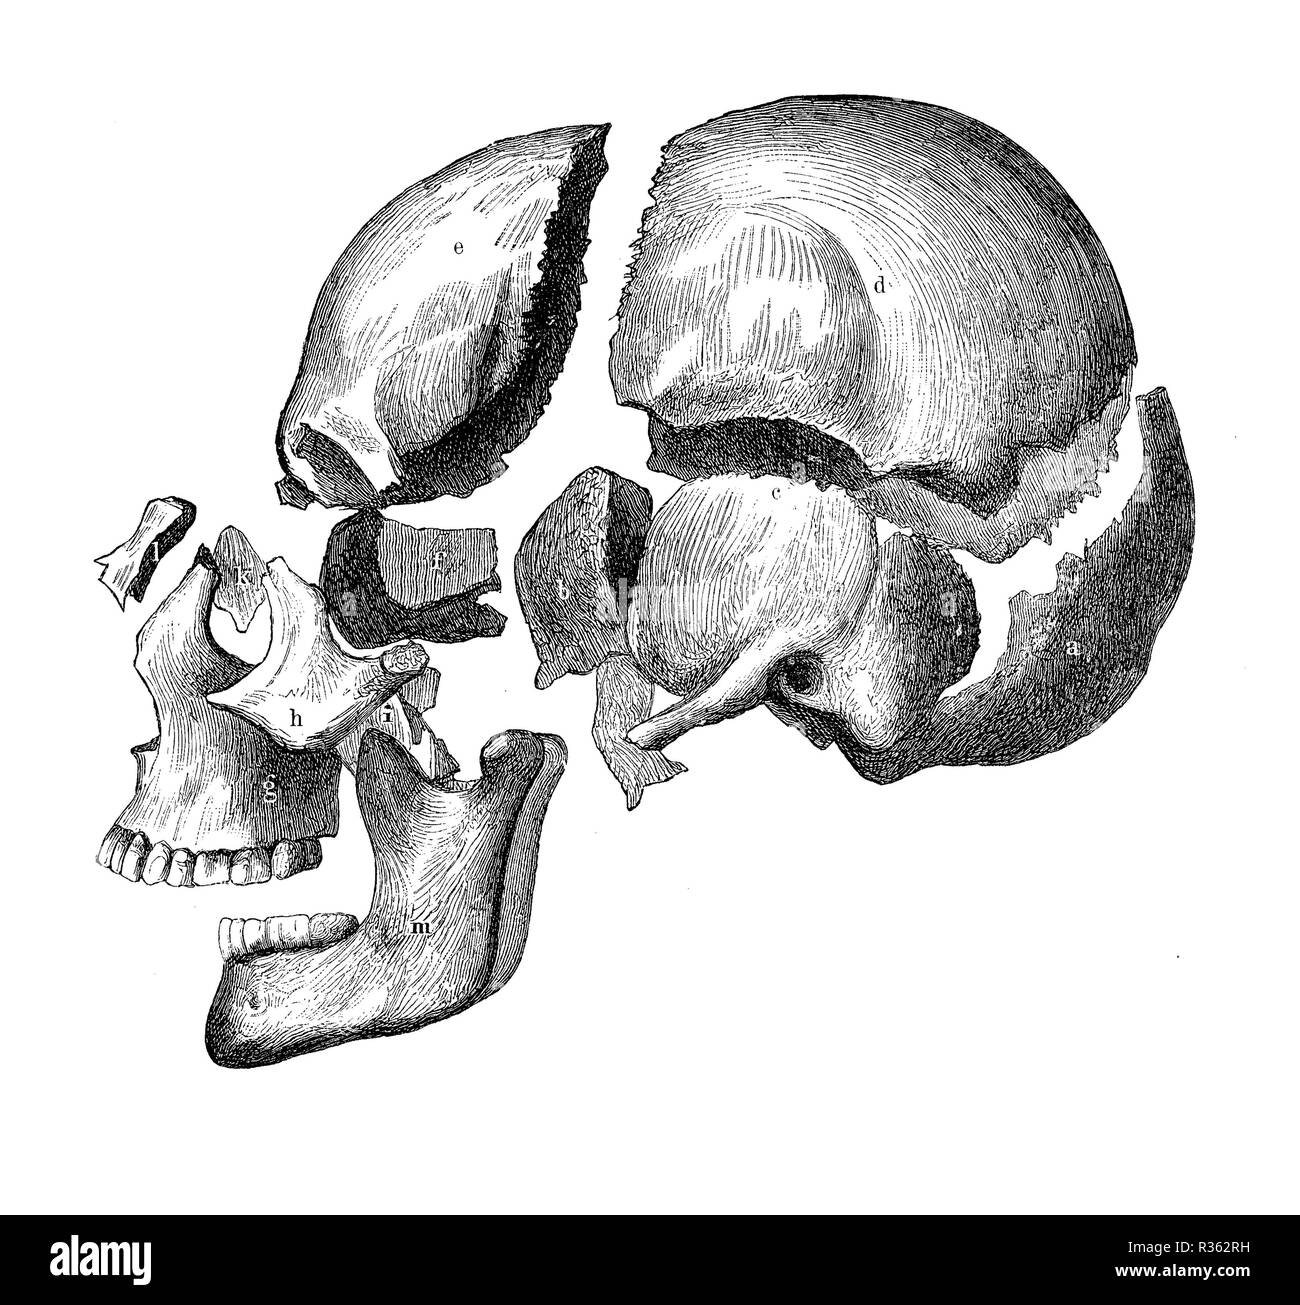 Vintage illustration of anatomy, skull with jaw and teeth, bone decomposition view - Stock Image